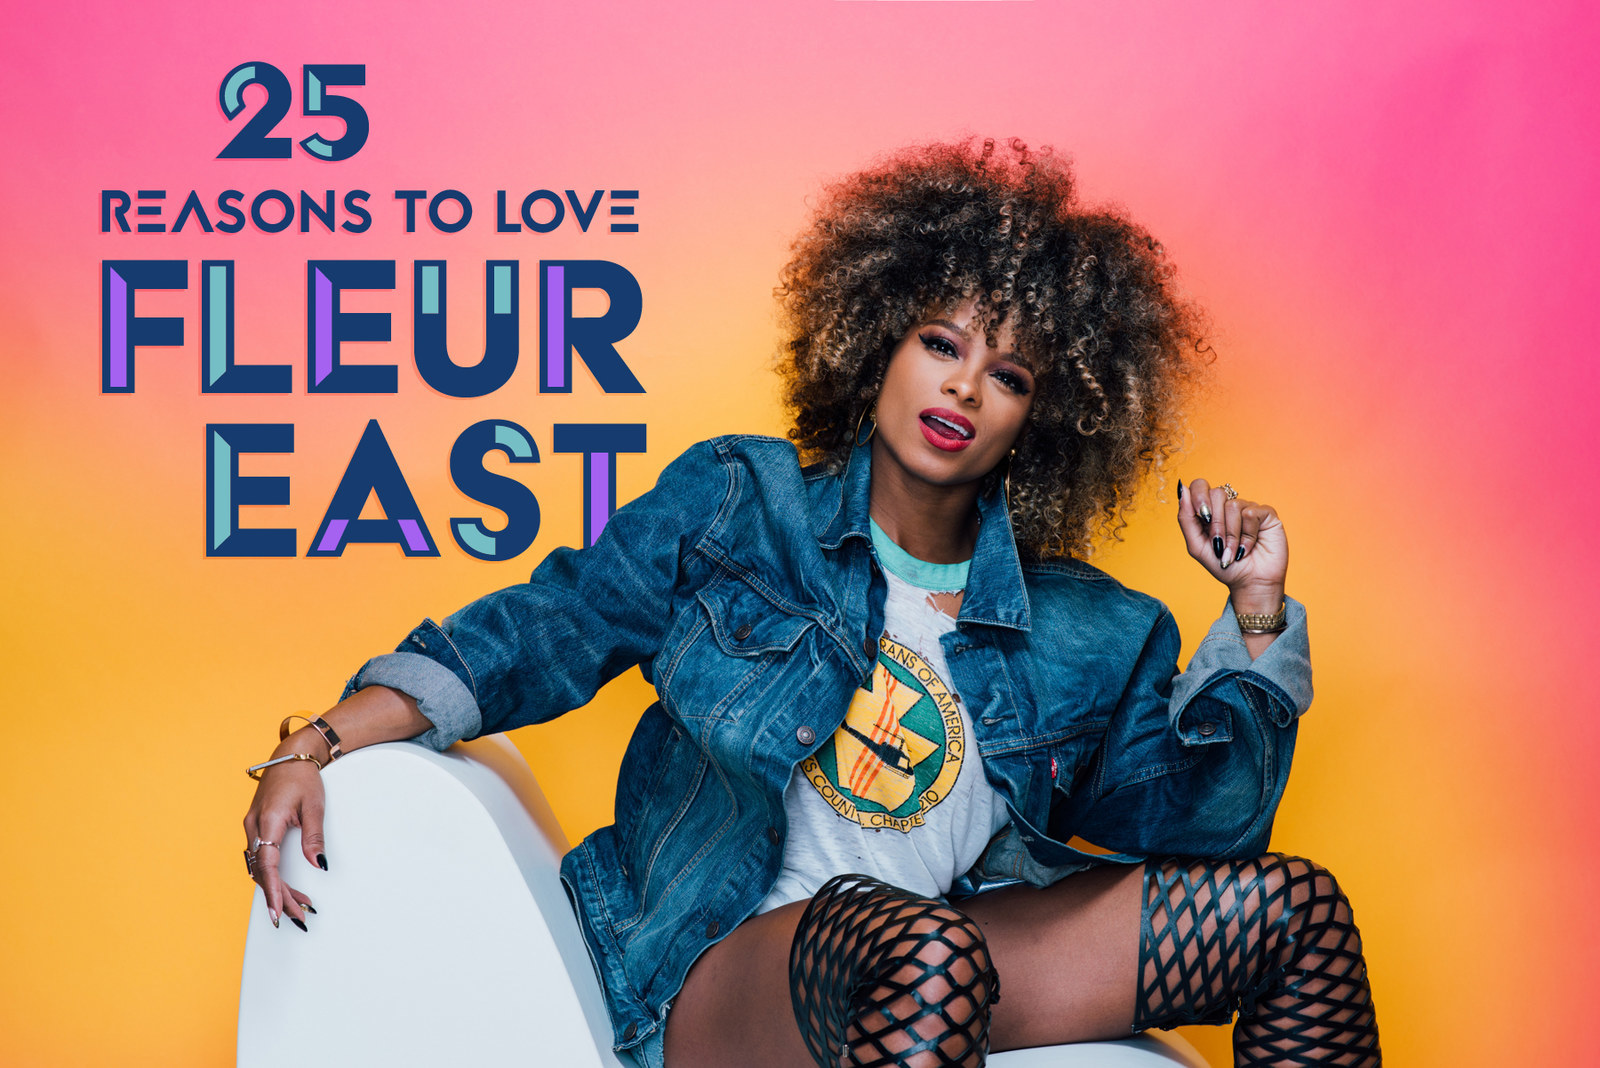 25 Reasons To Love Fleur East